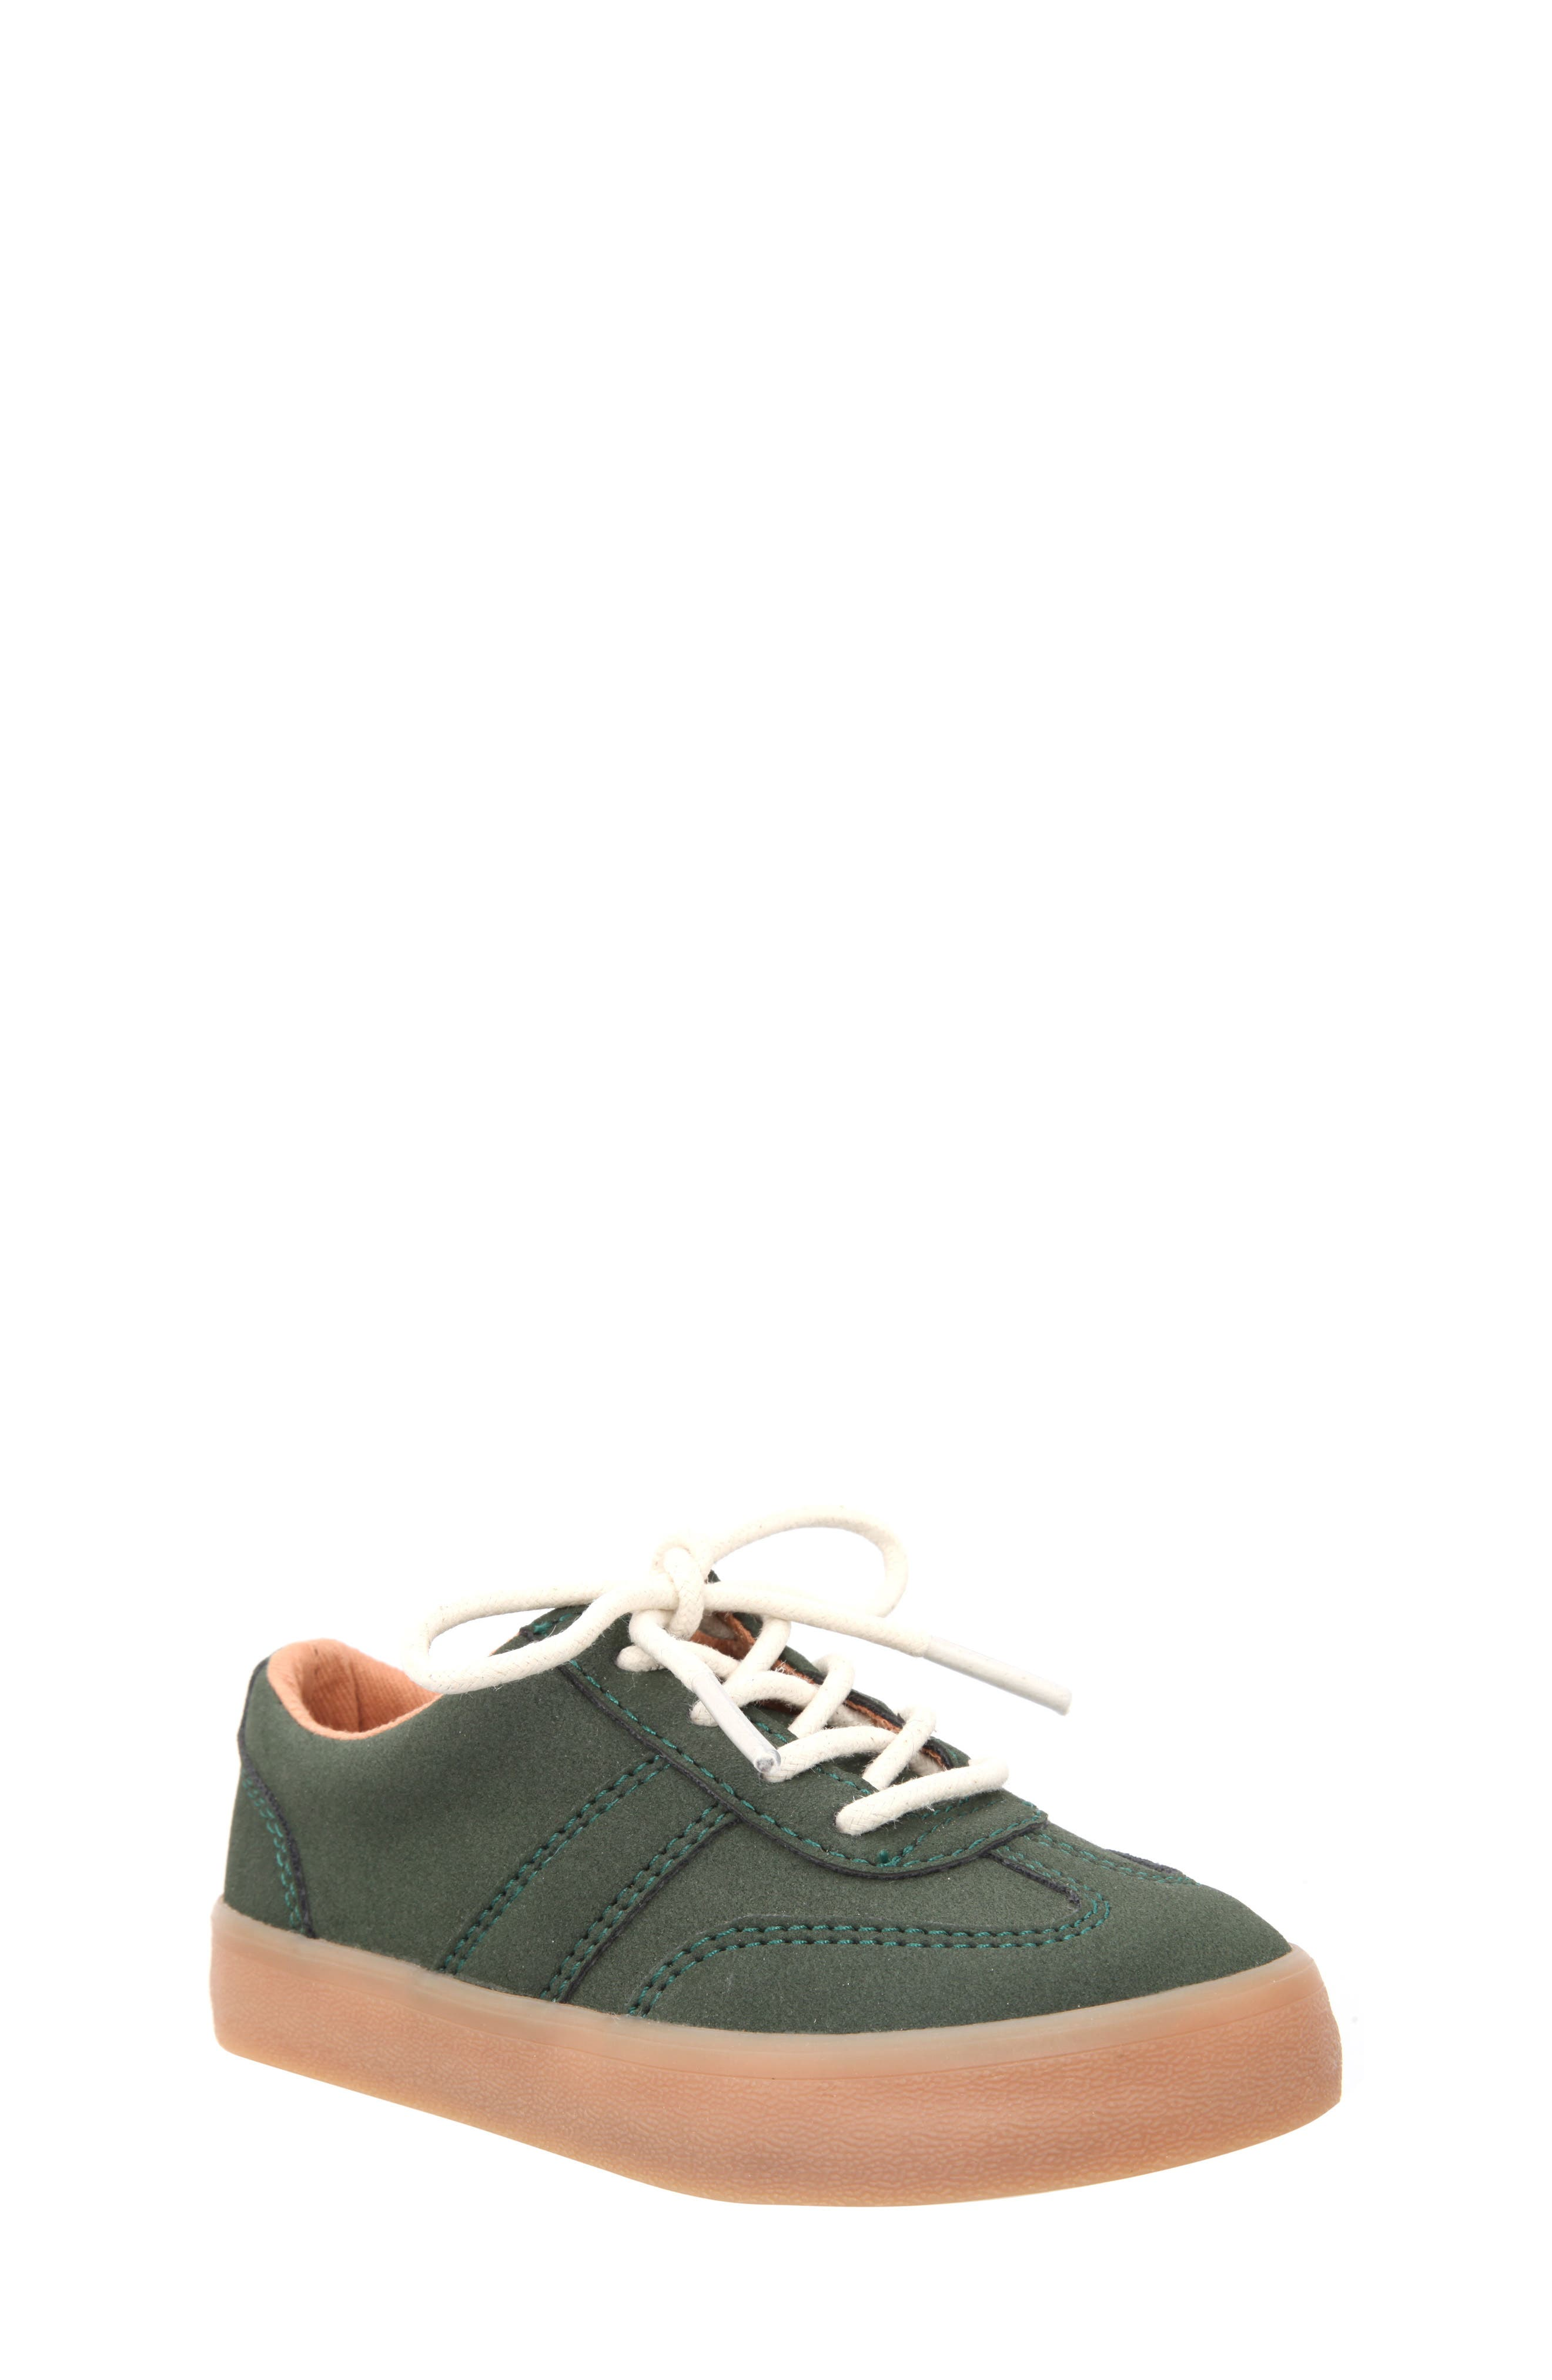 Neal Low Top Sneaker,                         Main,                         color, Olive Suede